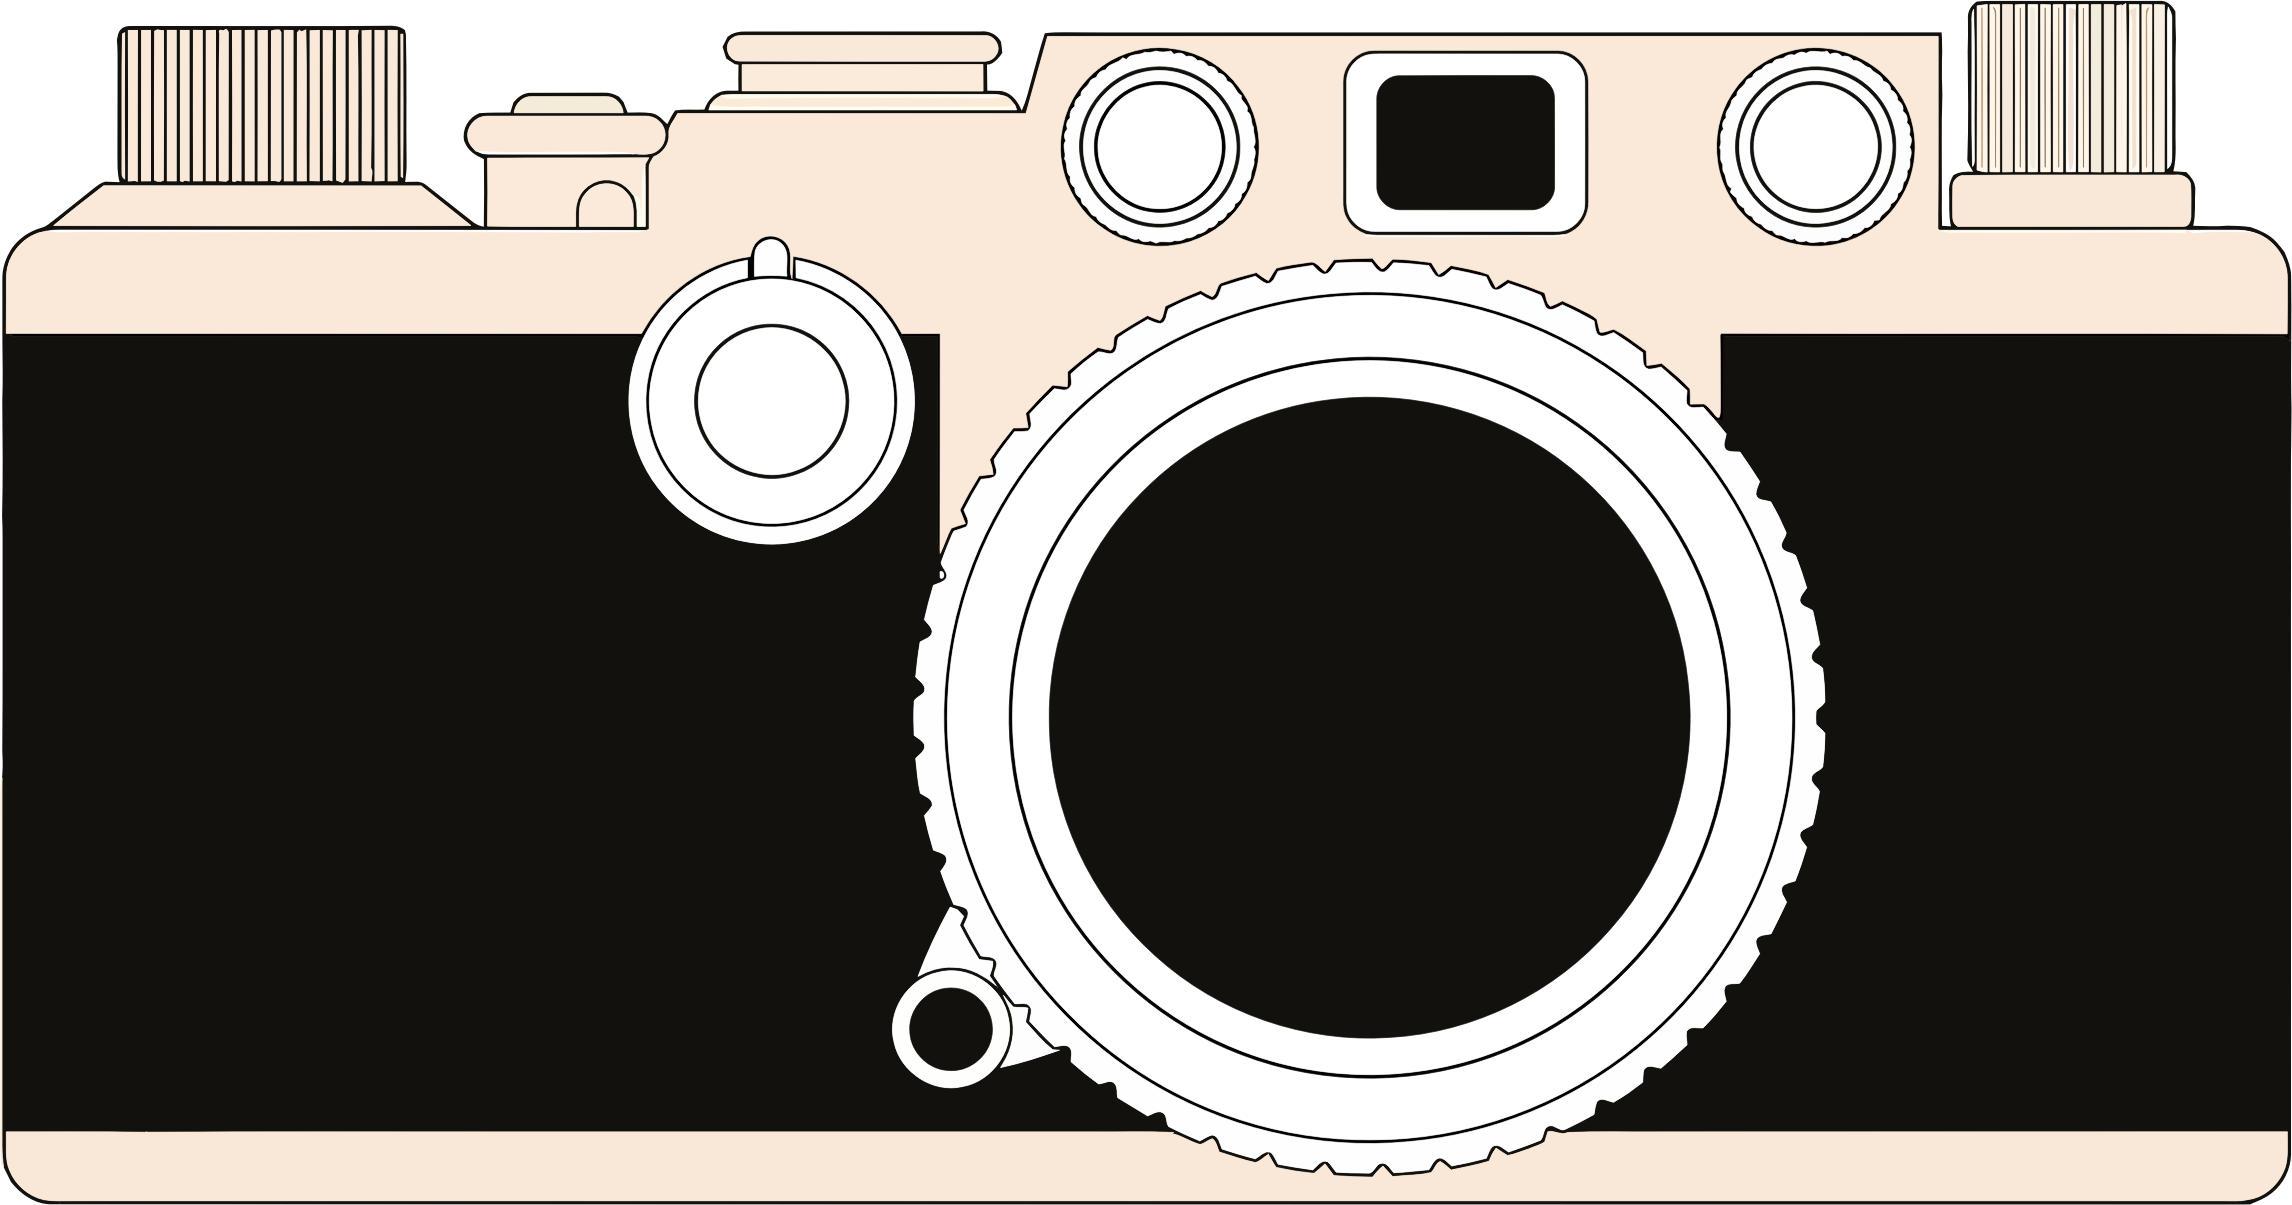 Fashioned icons png free. Camera clipart old time